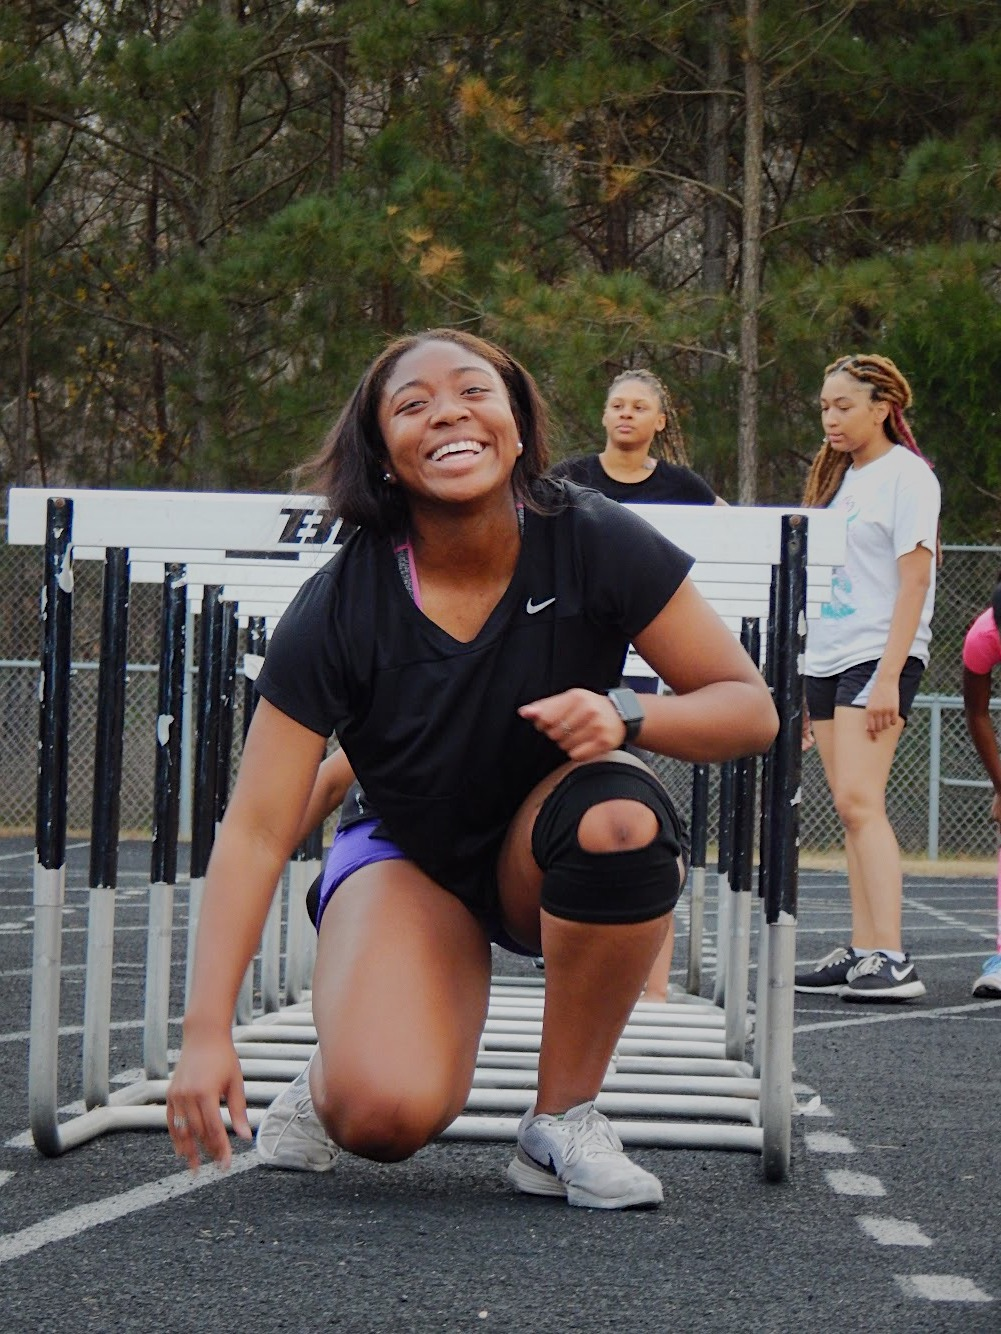 Jasmine Wilson- Johnson does a hurdle exercise during practice.